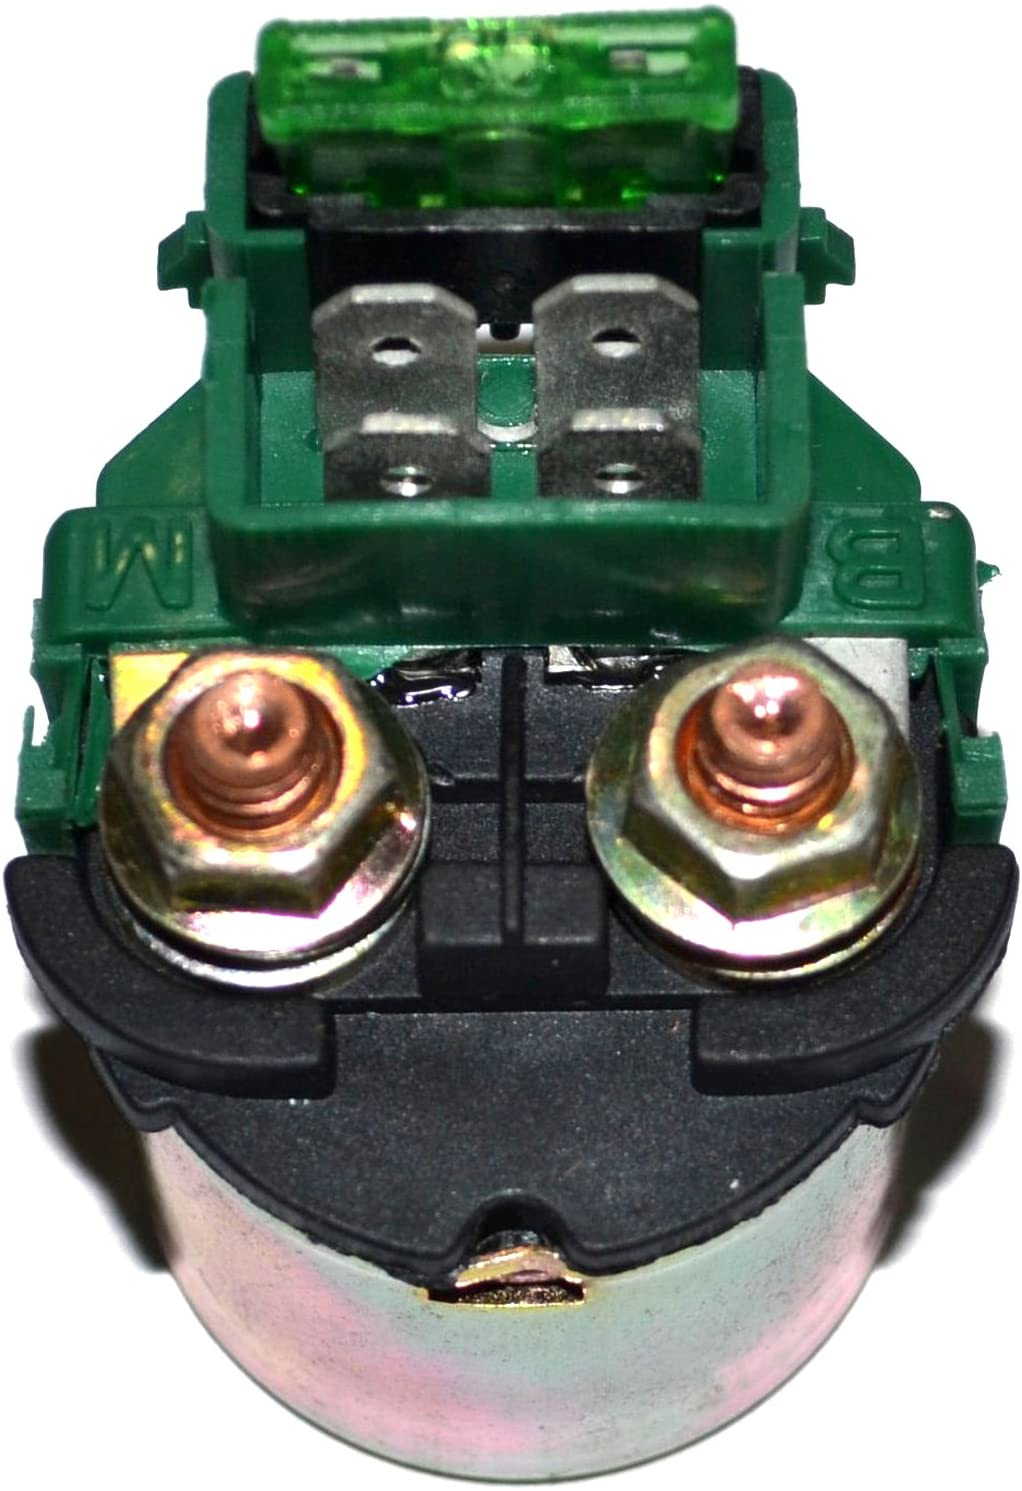 PROCOMPANY Starter Relay Solenoid Replaces for Honda GL1500 GL 1500 GoldWing 1988 1989 1990 1991-2000